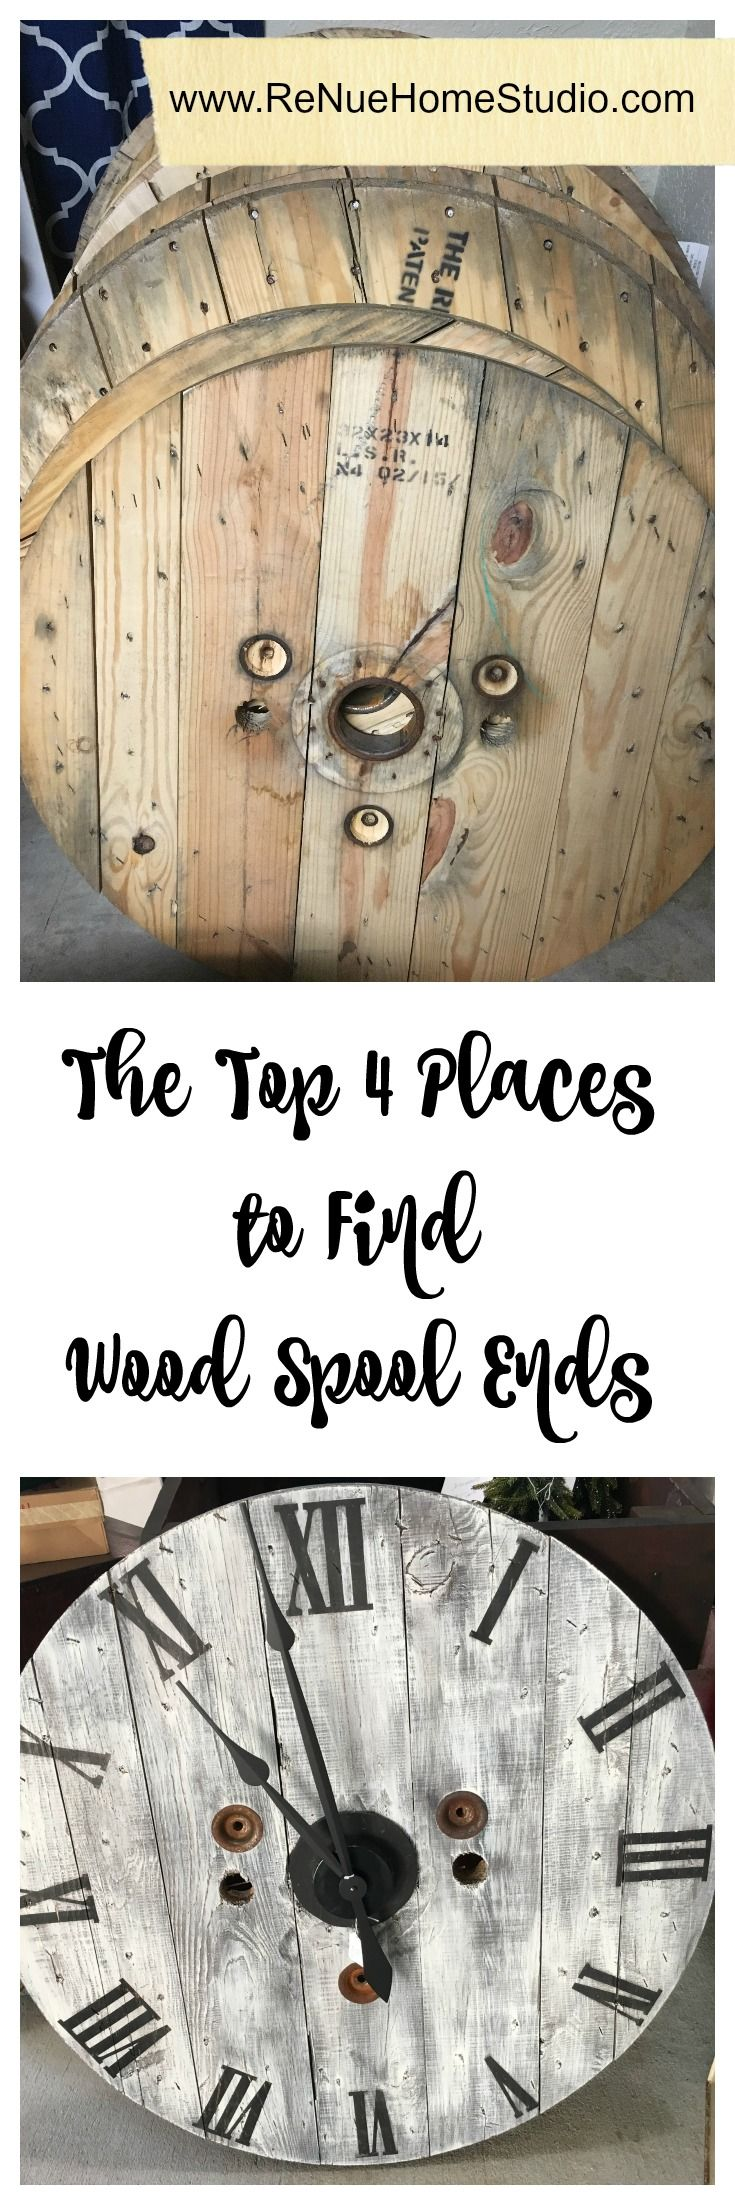 Large wooden spools for crafts - Here S Our Top 4 Places To Find Wood Spool Ends For Your Diy Projects Spool